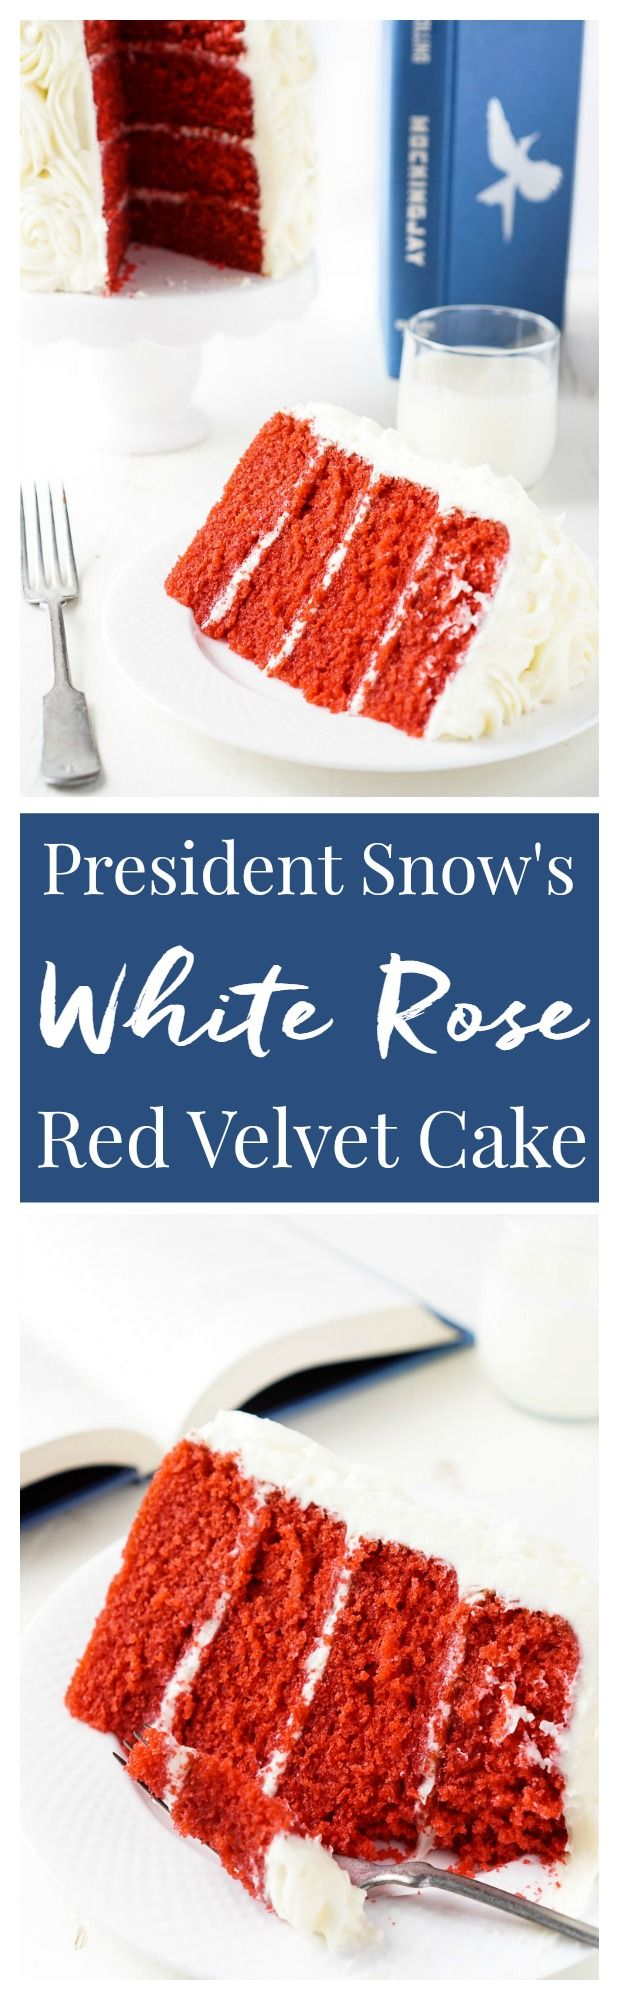 President Snow's White Rose Cake is a red velvet cake frostied in cream cheese buttercream and inspired by The Hunger Games trilogy! Classic from scratch flavors with a fun literary twist!